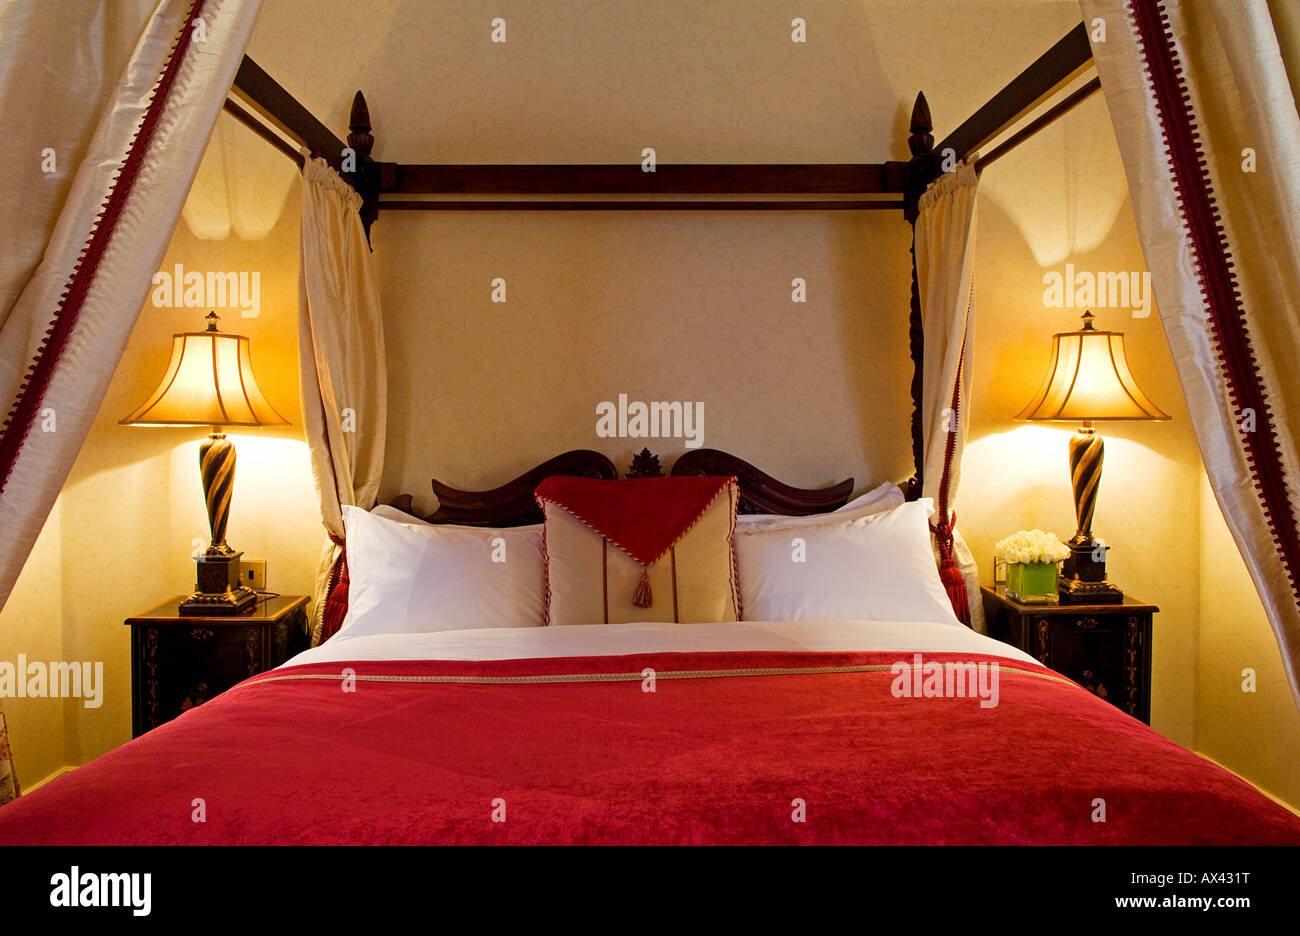 Northern Ireland, Fermanagh, Enniskillen. The four-poster bed in The Nick Faldo Suite at Lough Erne Golf Resort. - Stock Image